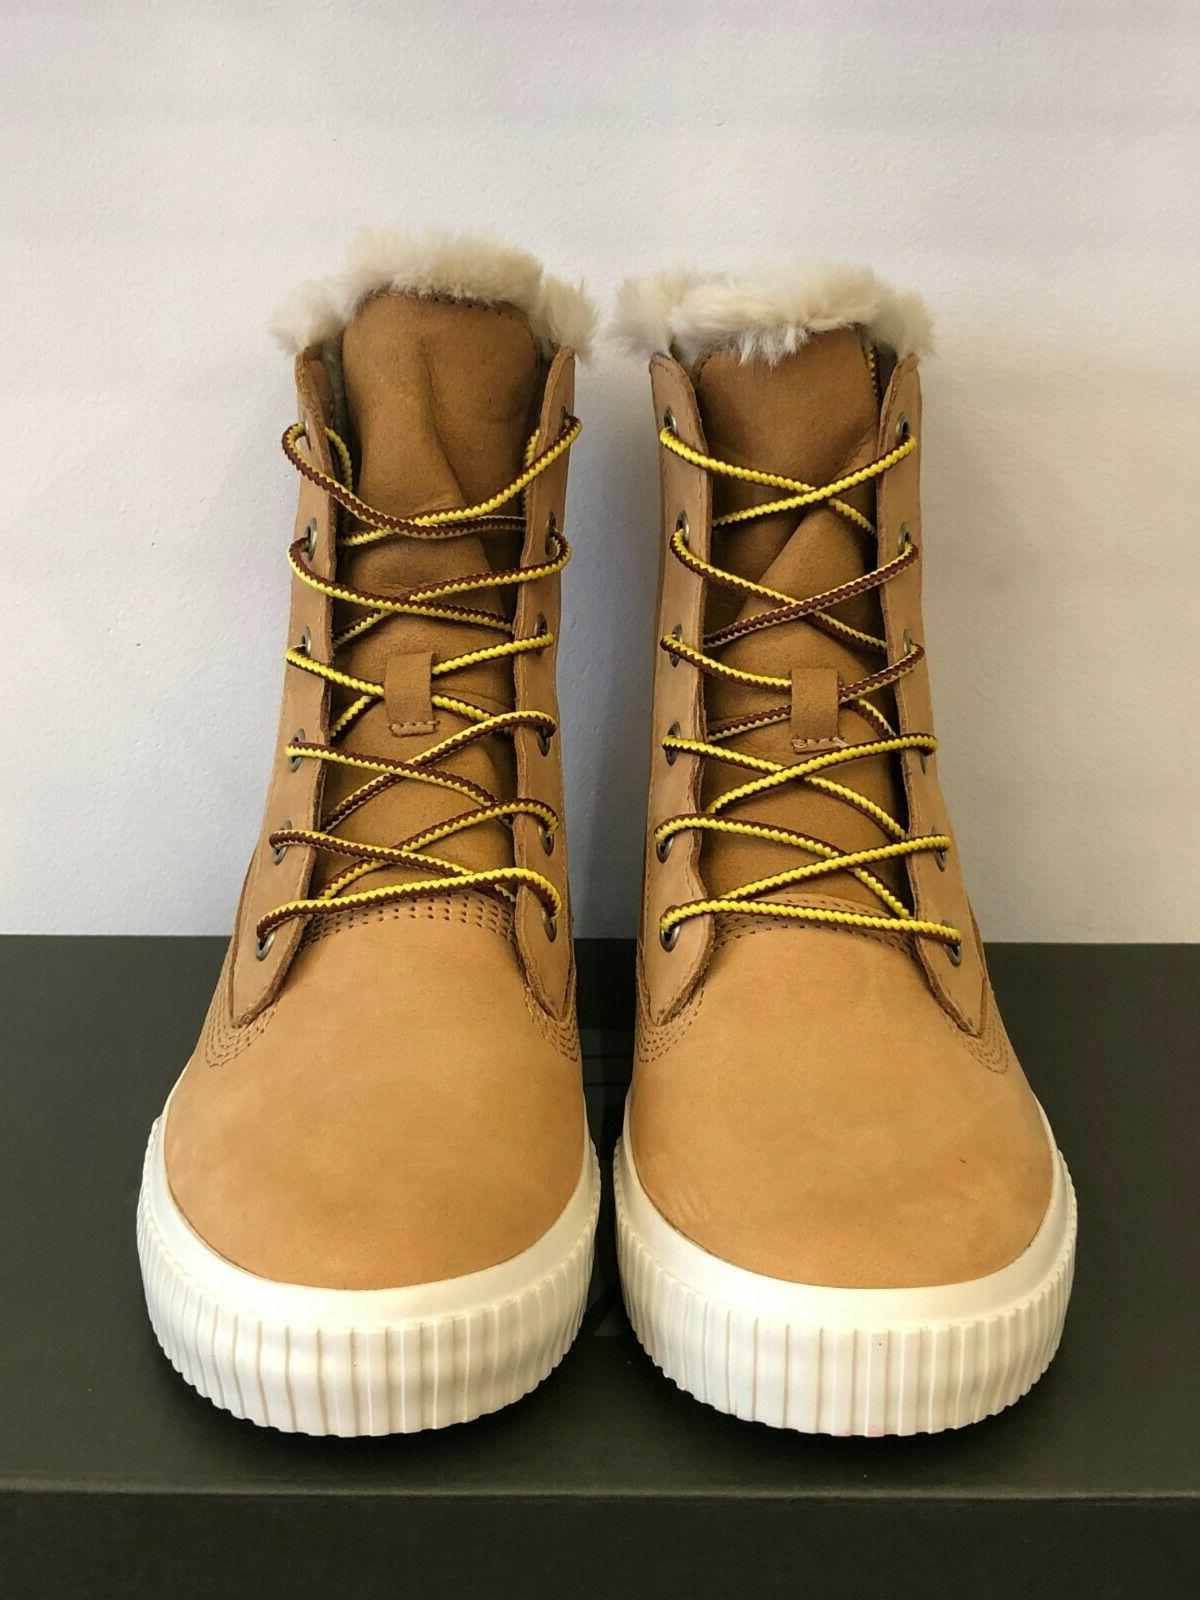 NEW IN THE TIMBERLAND WHEAT WINTER BOOTS SHOES